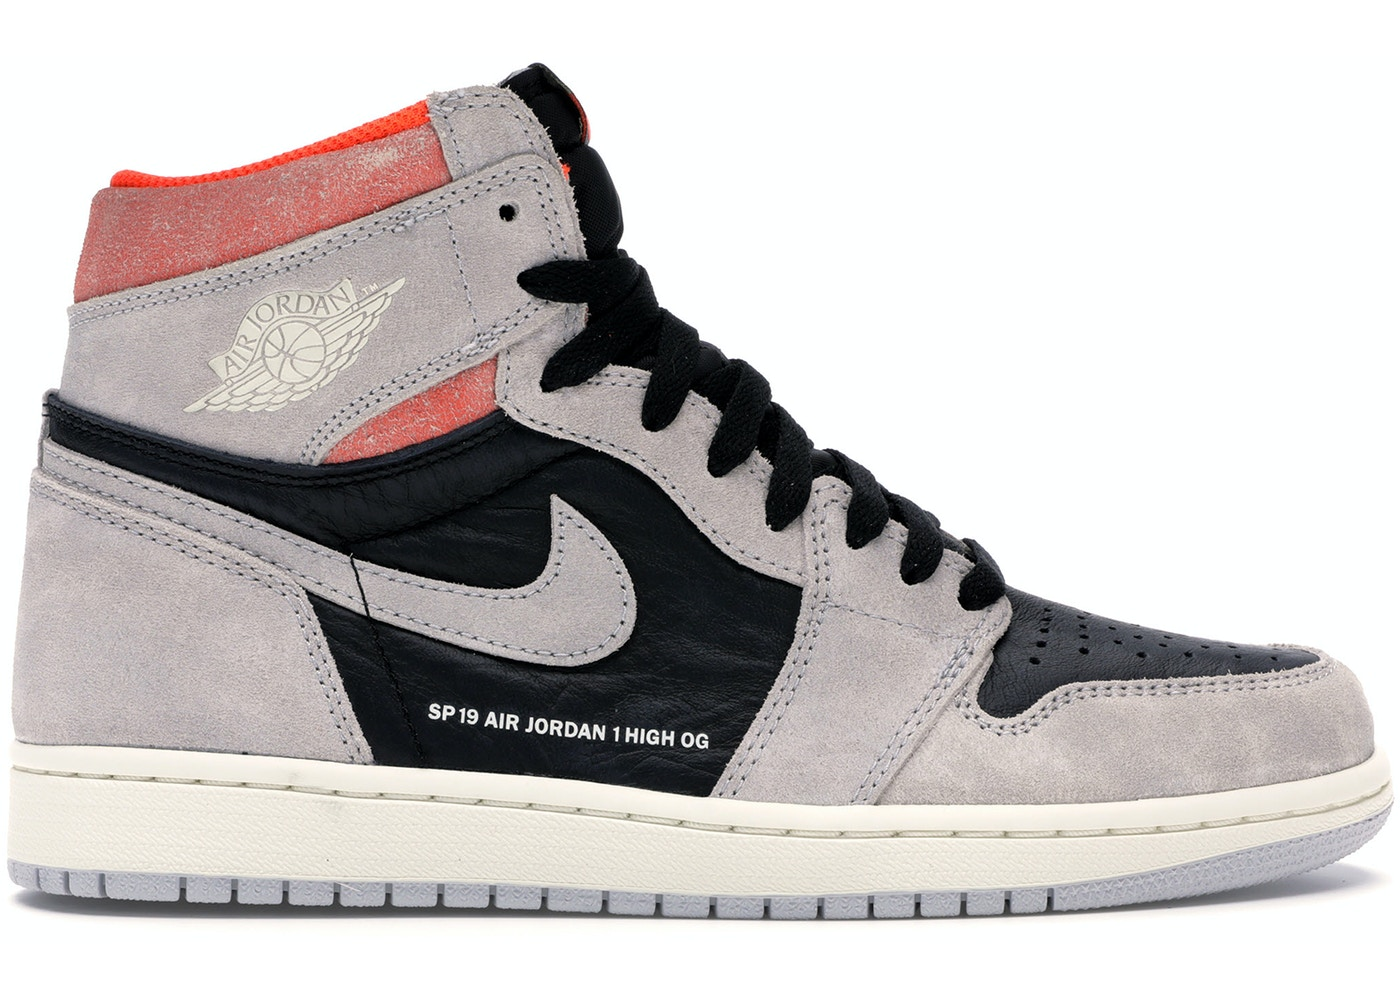 adf671f52c7744 Jordan 1 Retro High Neutral Grey Hyper Crimson - 555088-018